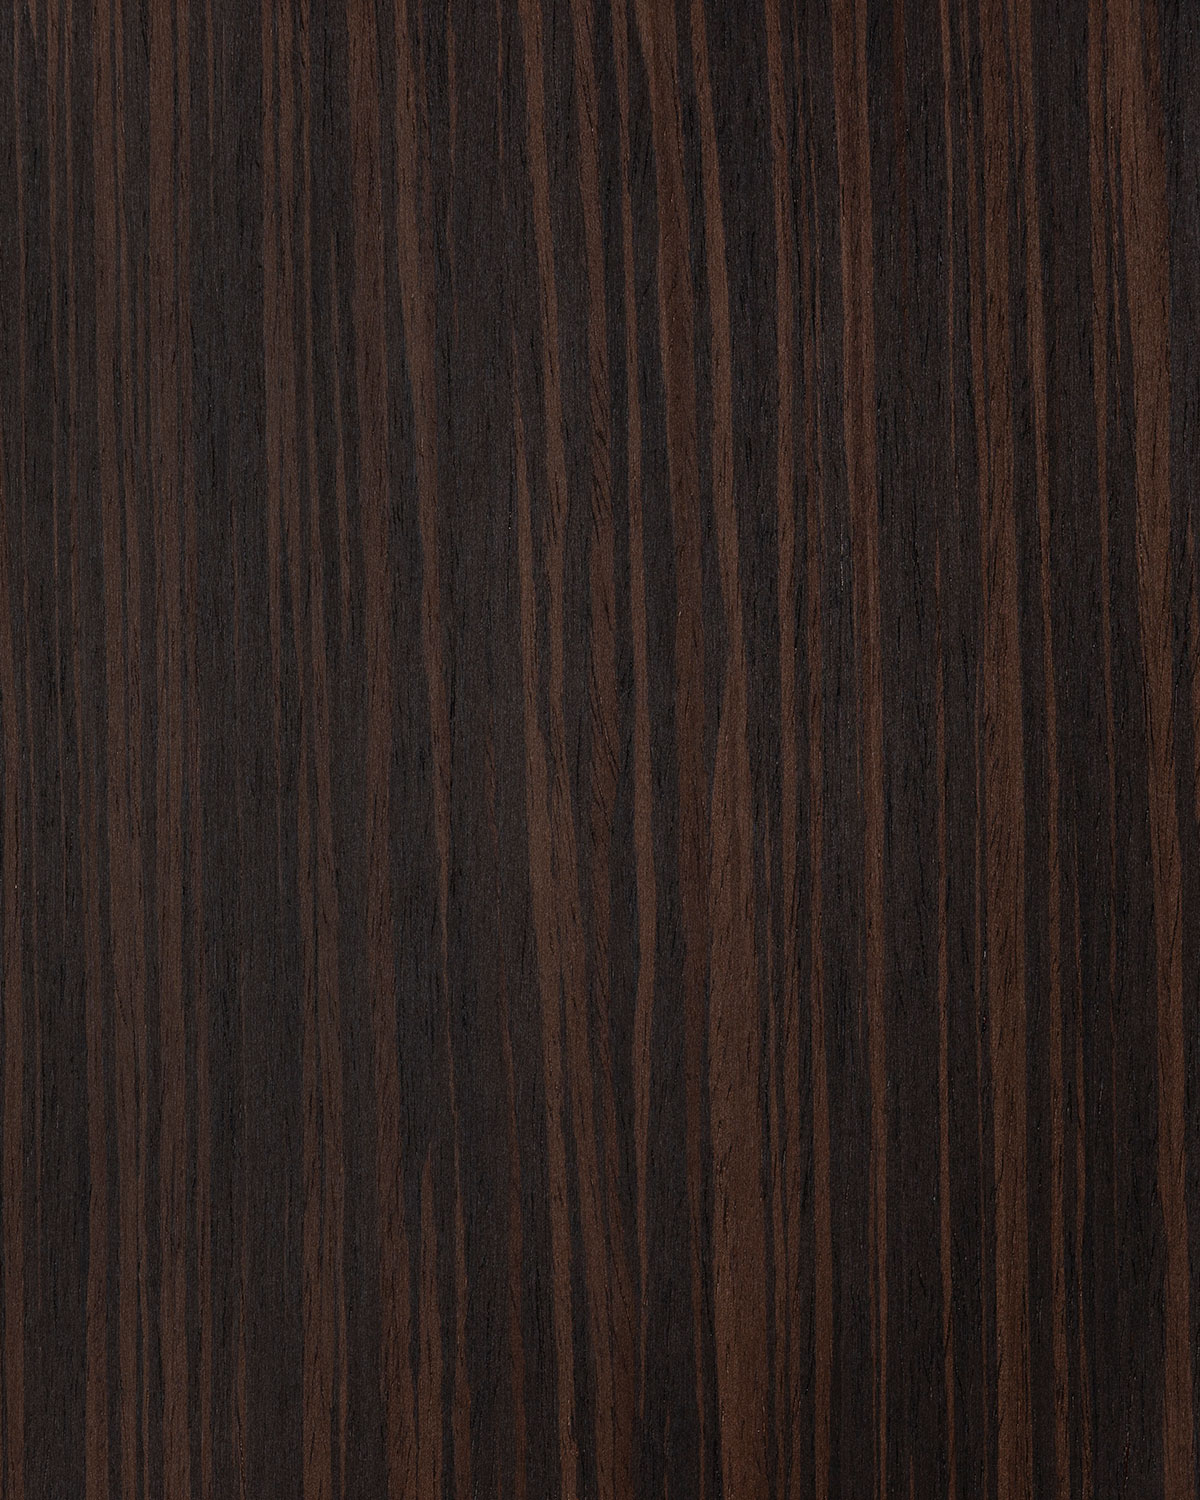 Recon Ebony Quarter Cut - Dark Stain